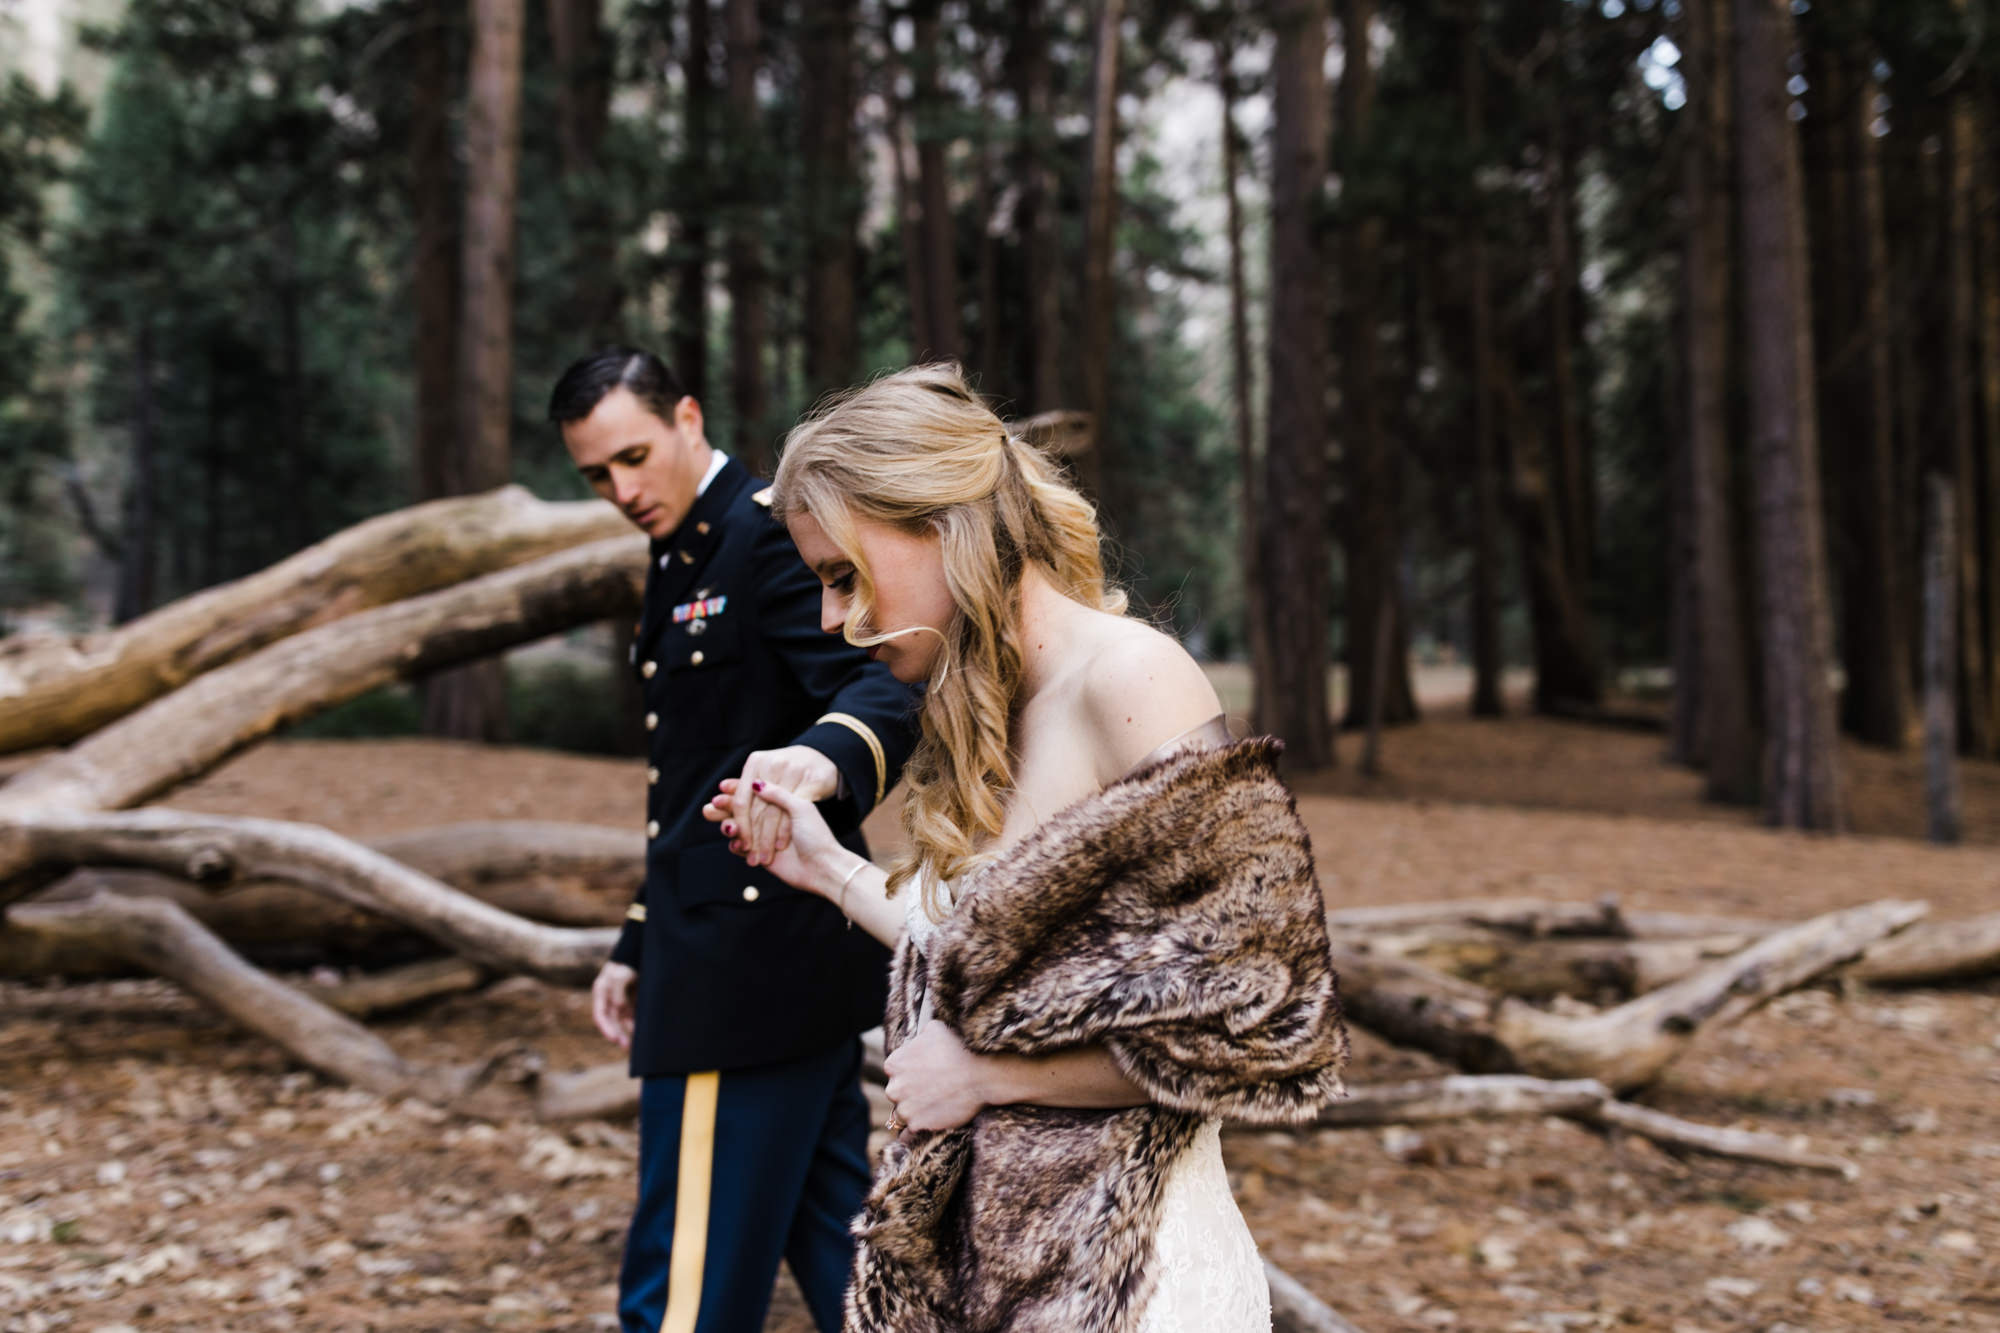 lindsey + stuart's intimate family-centered wedding in yosemite | national park elopement |destination elopement photographers | the hearnes adventure photography | www.thehearnes.com